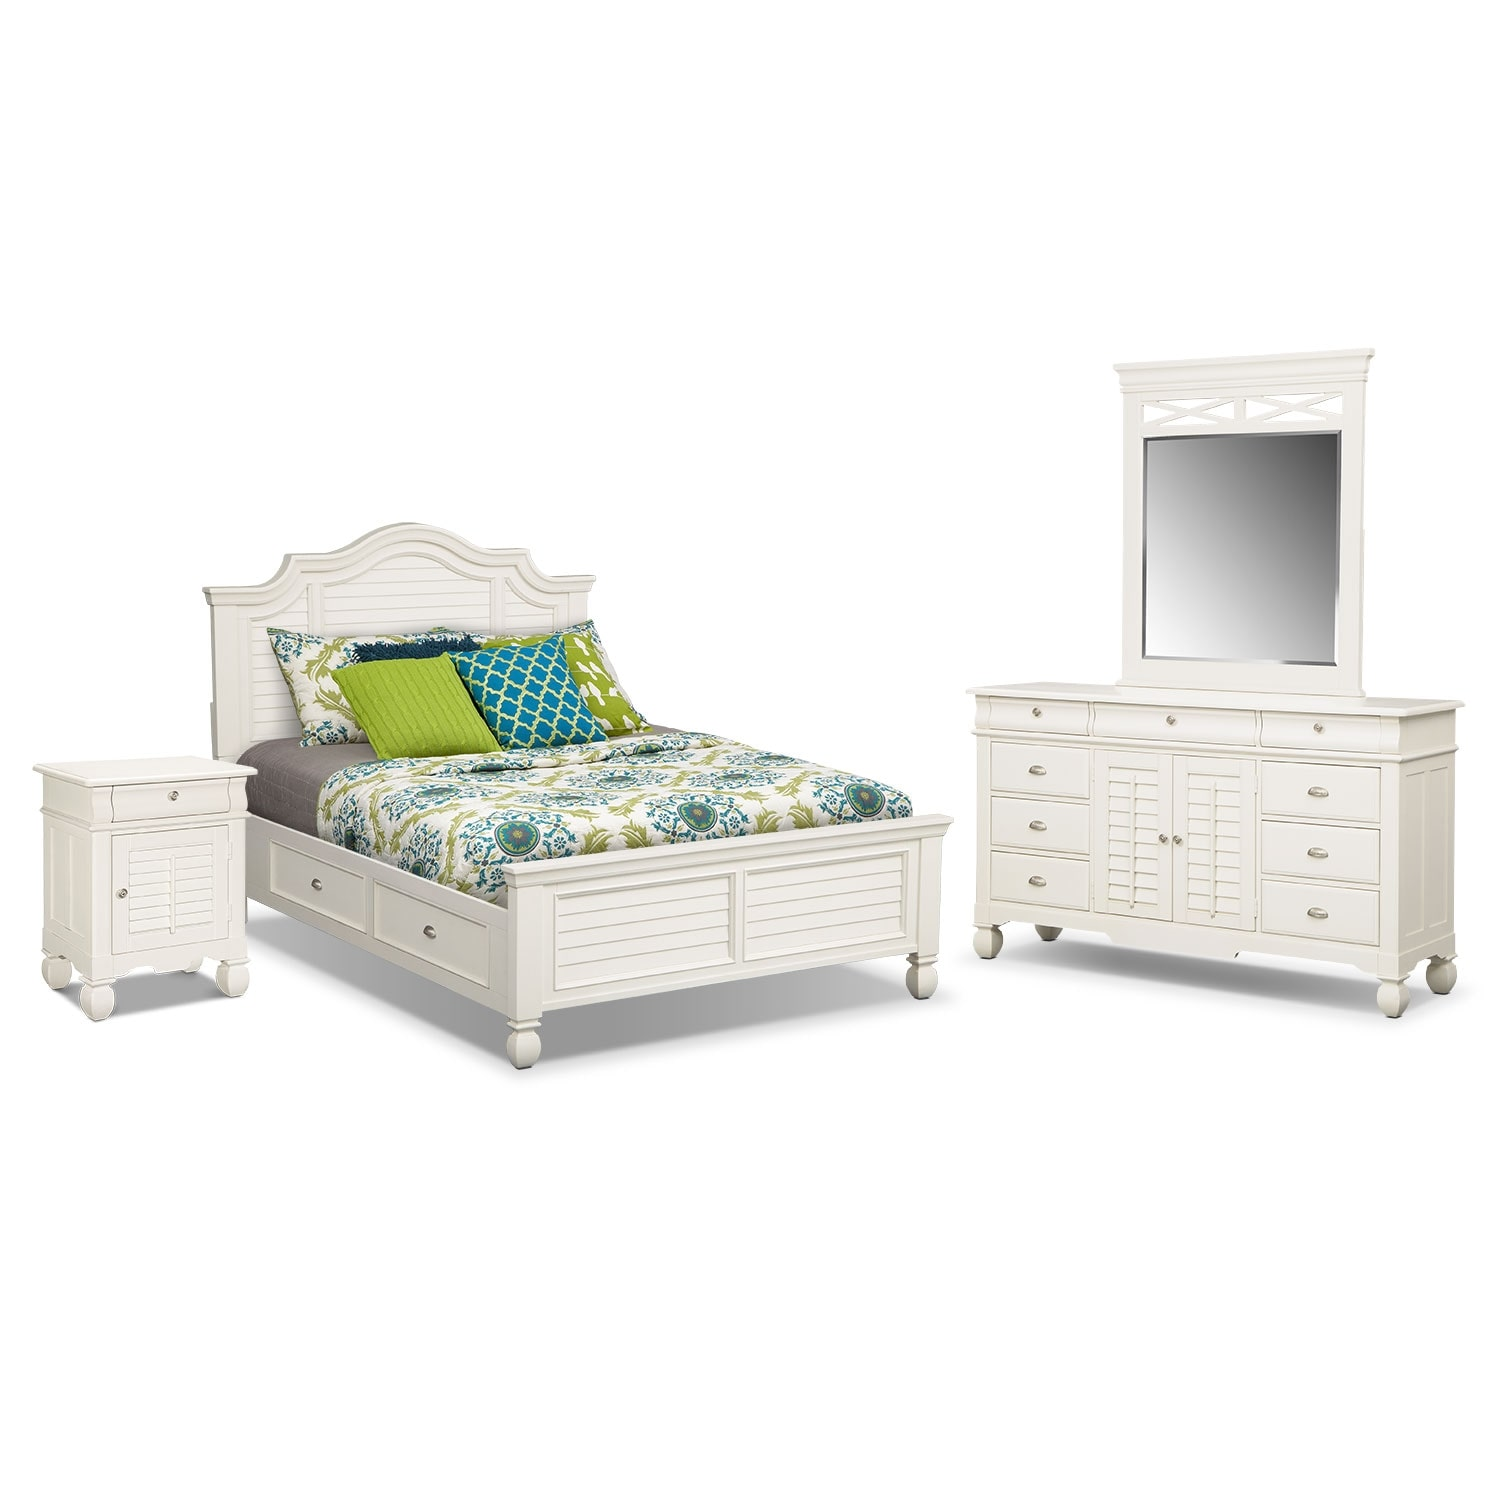 Plantation Style Bedroom Furniture Plantation Cove Queen Storage Bed White Value City Furniture